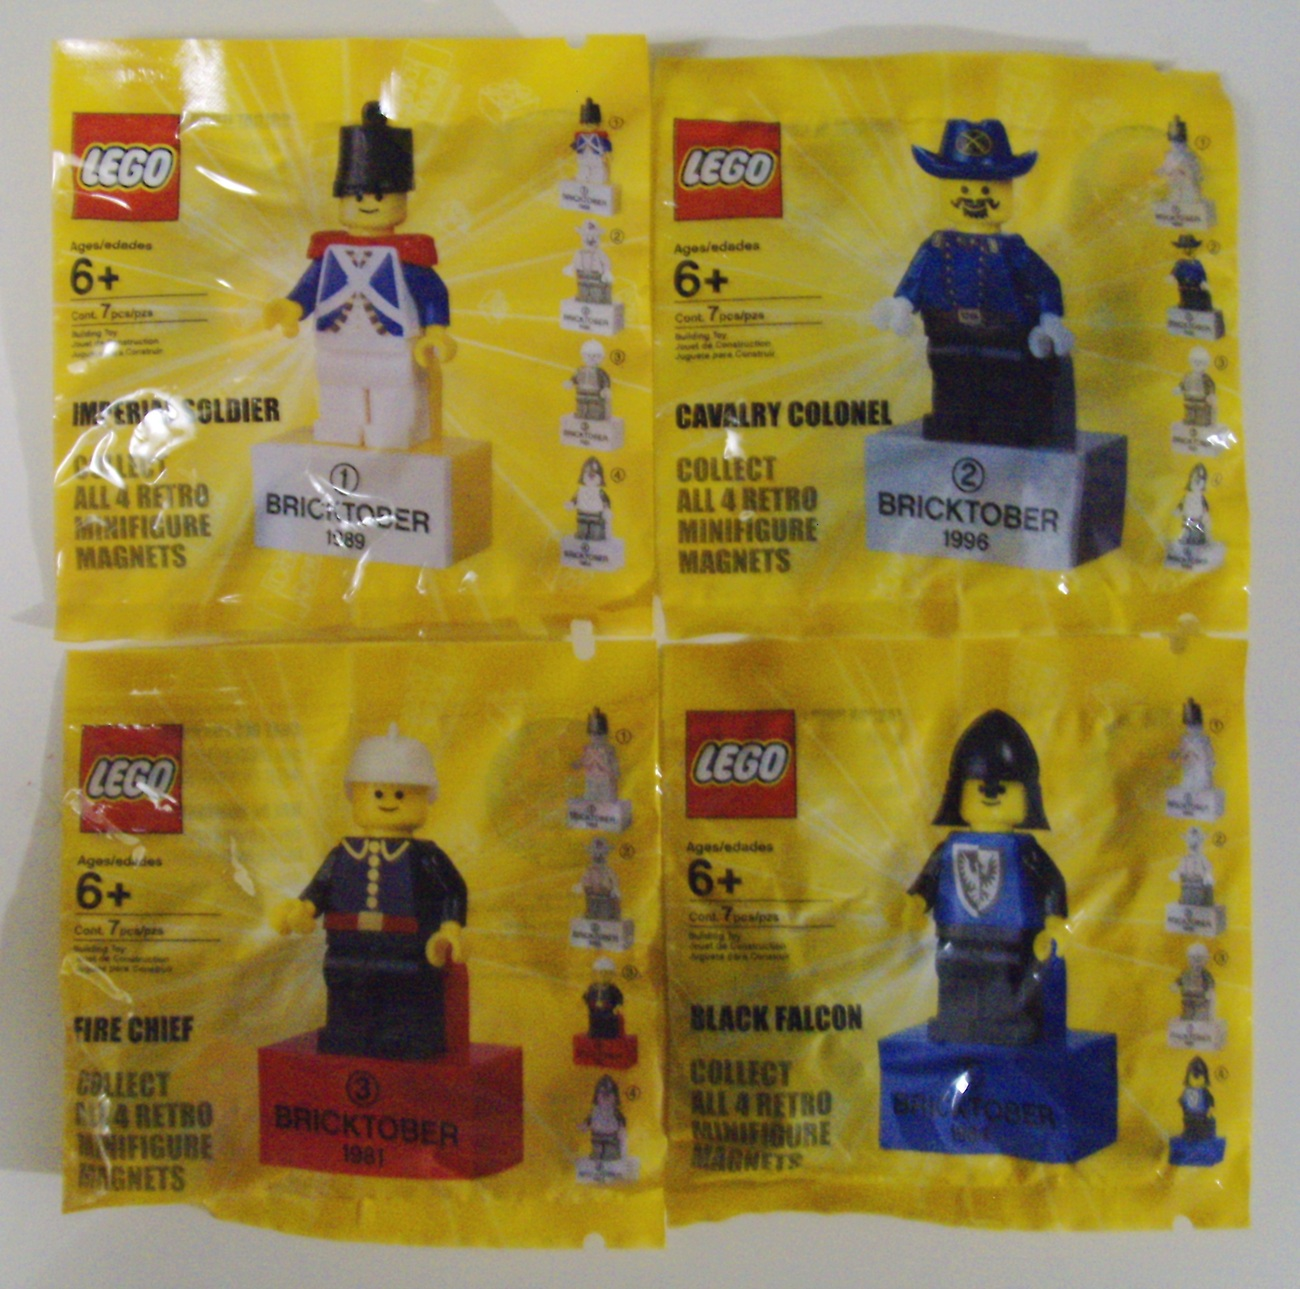 LEGO Bricktober Complete Set of 4 Minifigures 2010 Toys R Us Exclusive - New